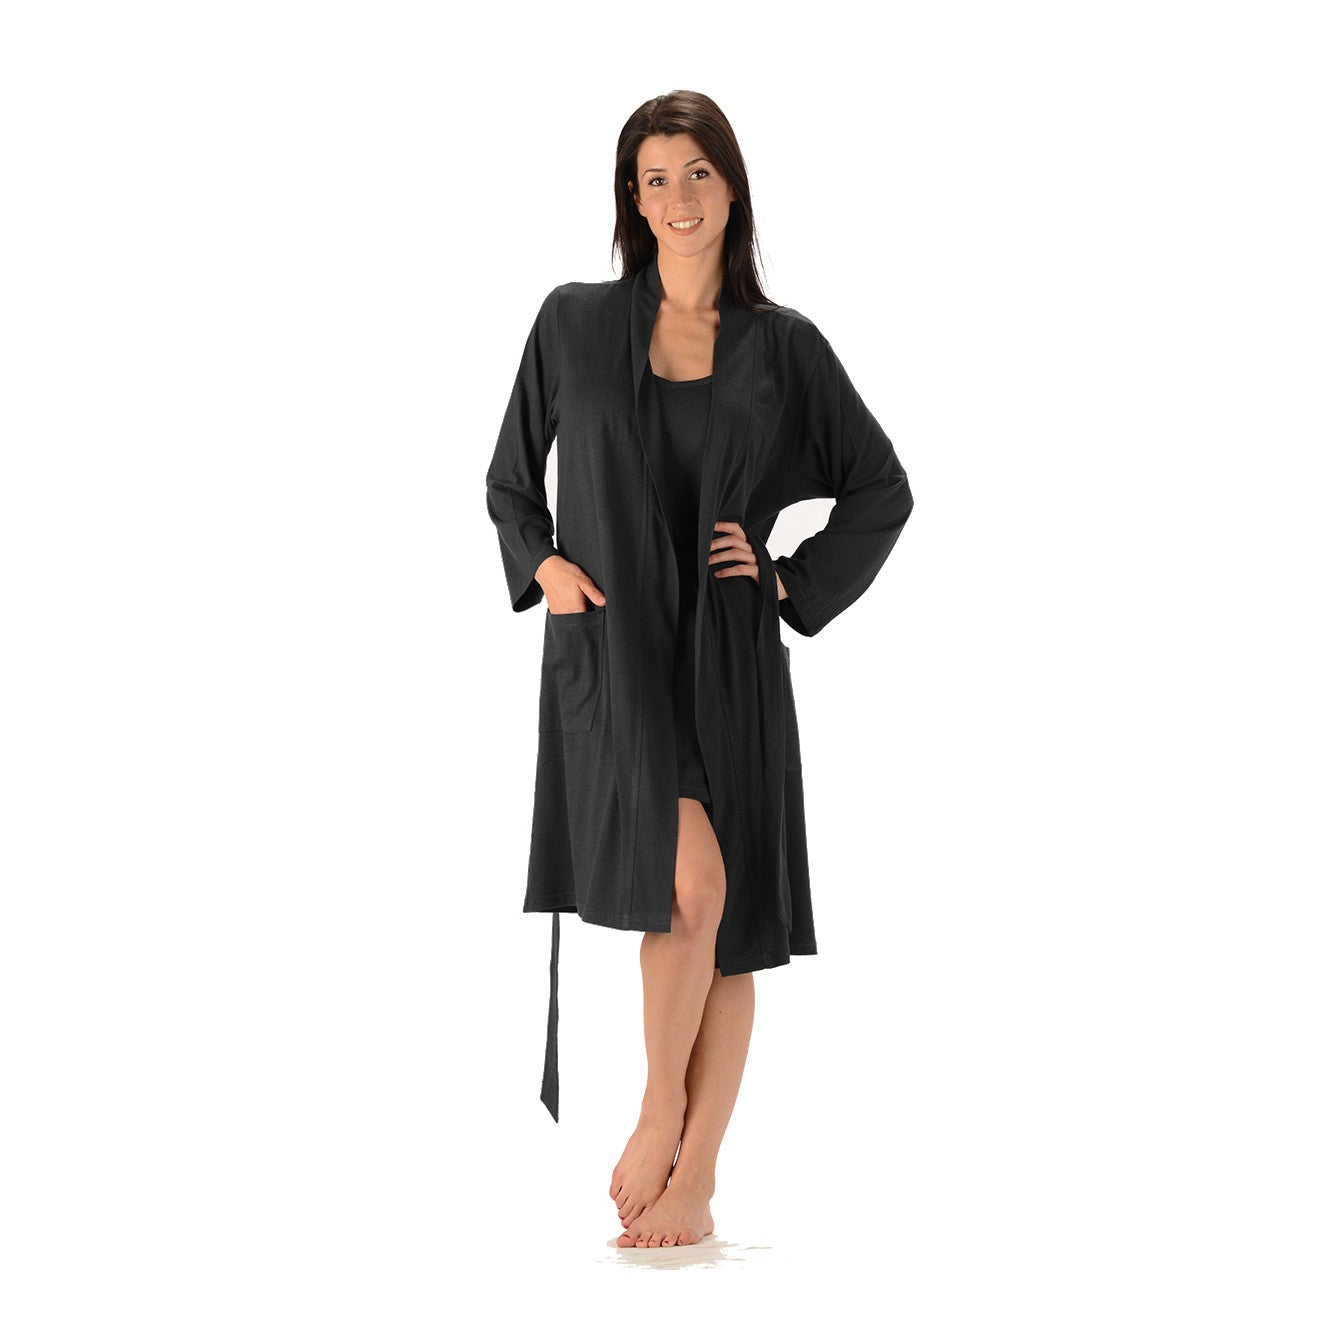 Bamboo and Organic Cotton lightweight bathrobe with two large front pockets and strap tie